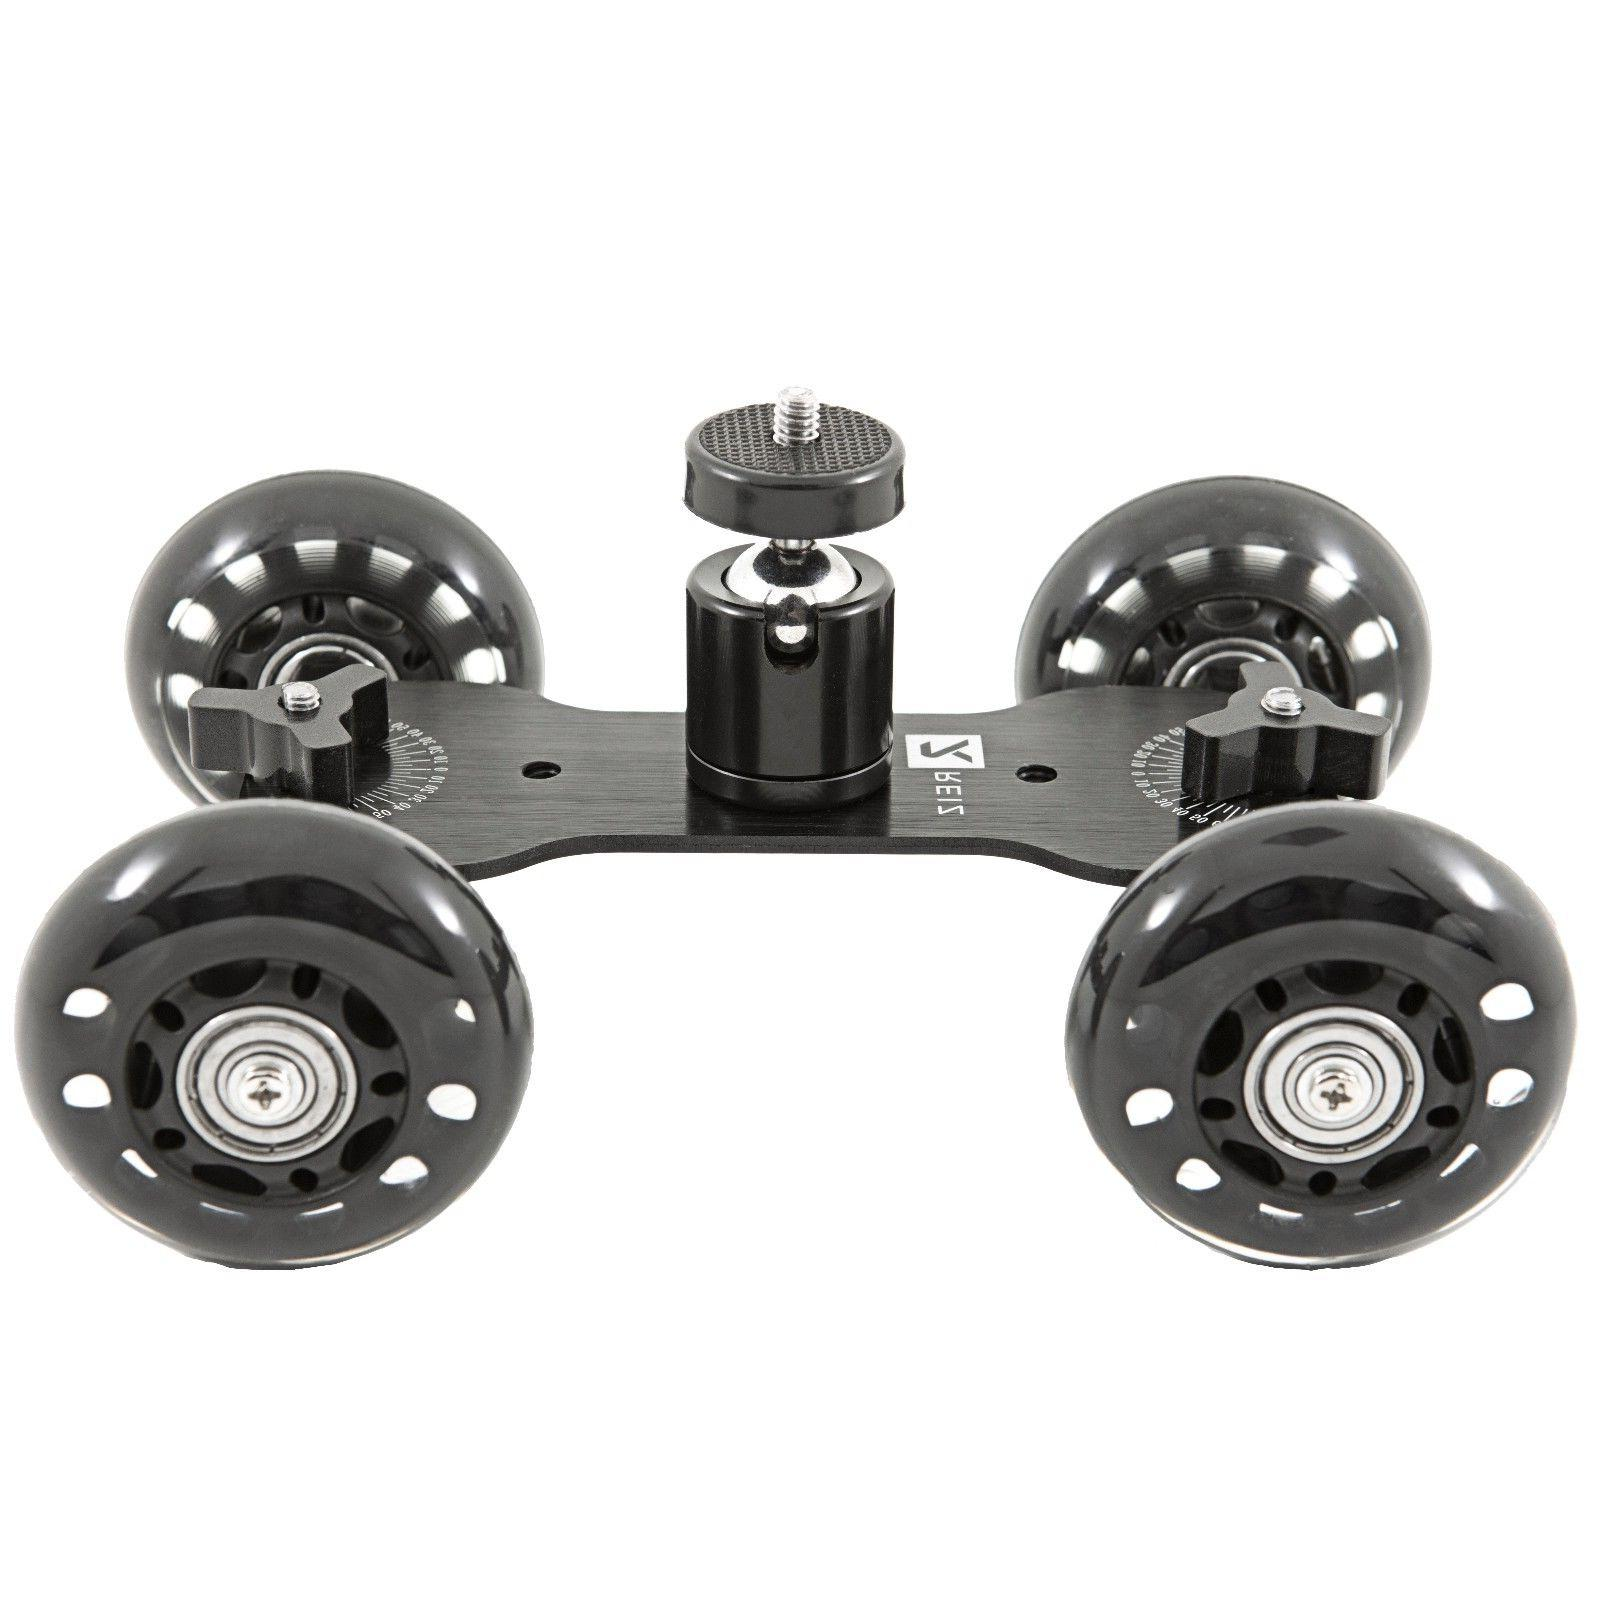 Desktop Camera Video Wheels Slider Dolly Glide